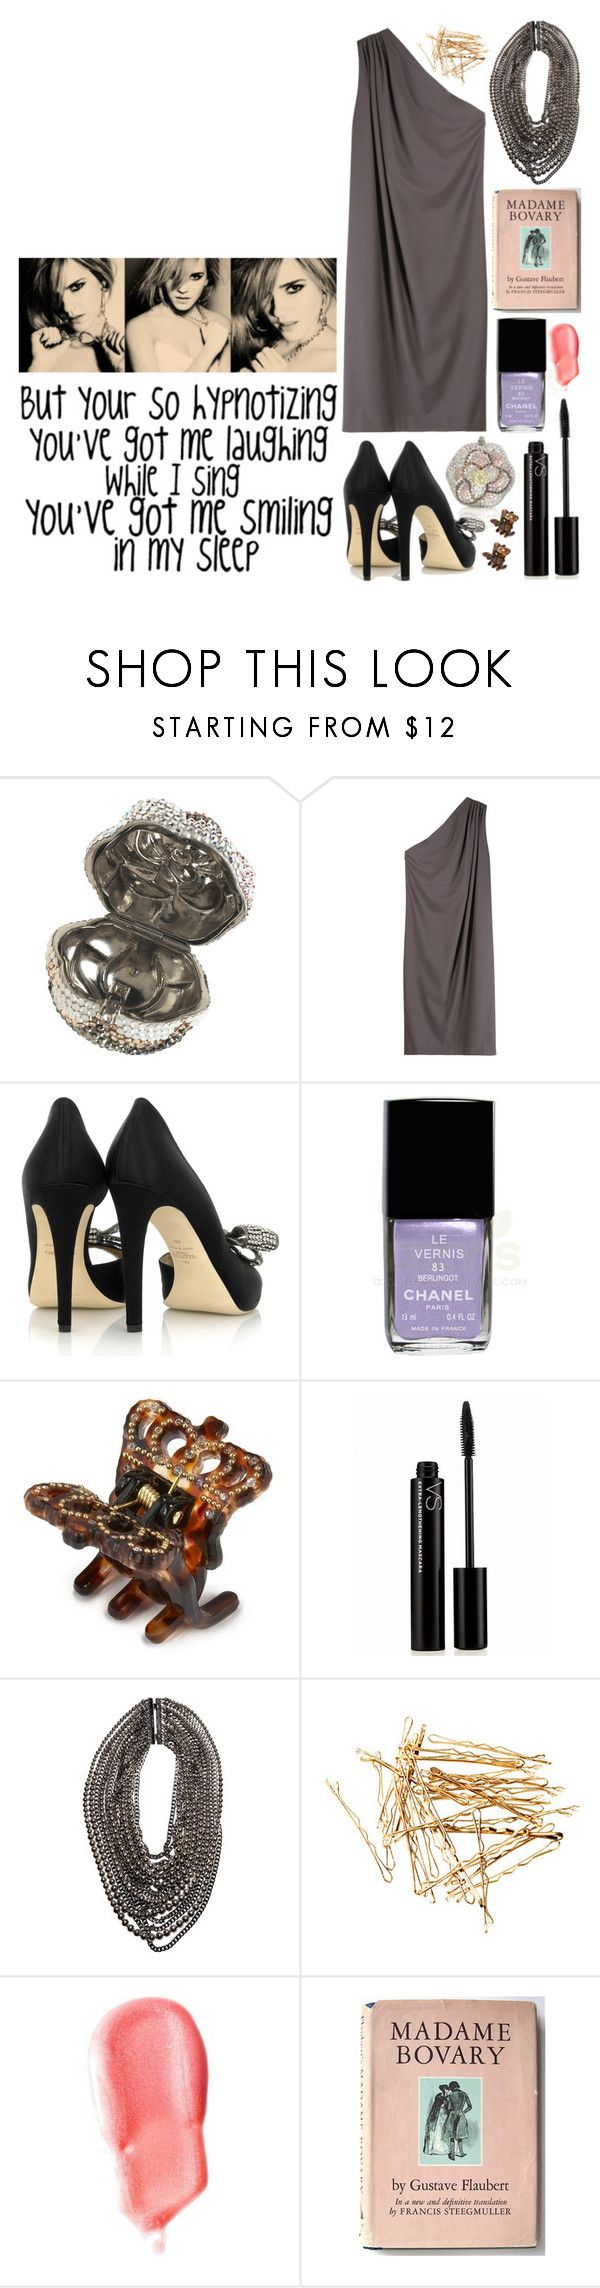 Best 25 demi lovato catch me ideas on pinterest 5 meses juntos 101 catch me demi lovato by michellelyn liked on polyvore featuring hexwebz Gallery